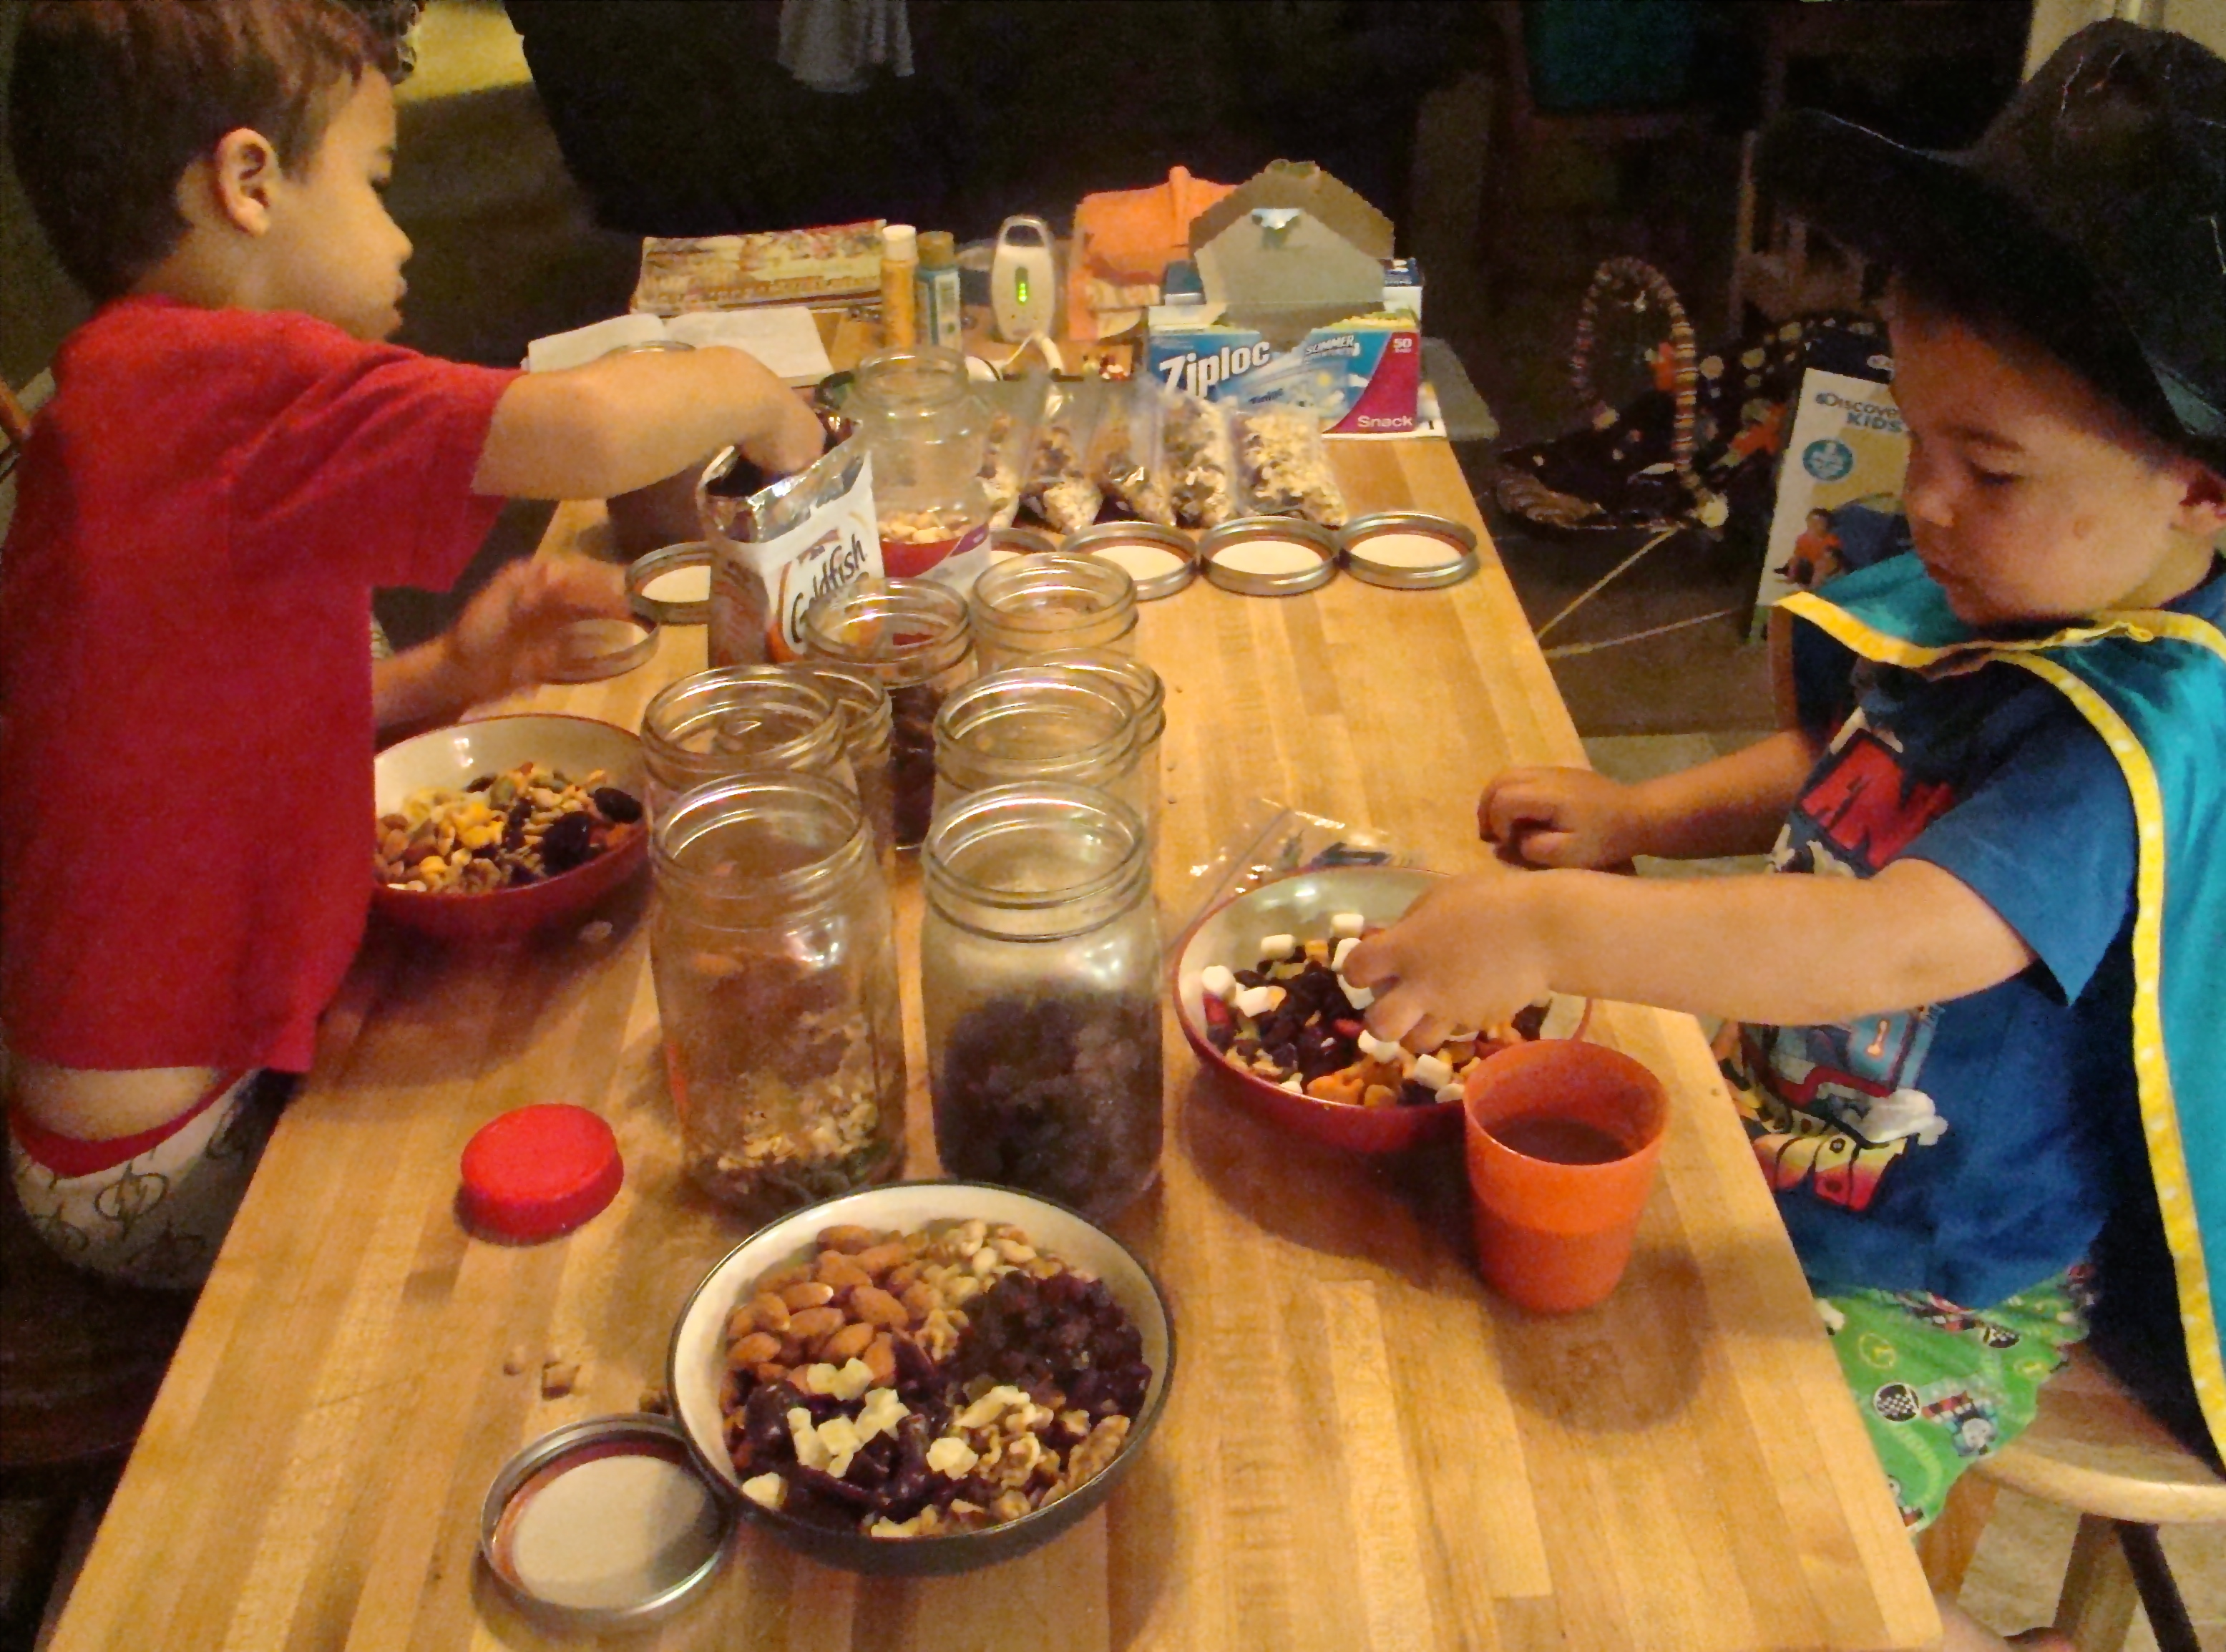 Going on a road trip? Set up a snack bar and let your kids put together snack bags for the trip.